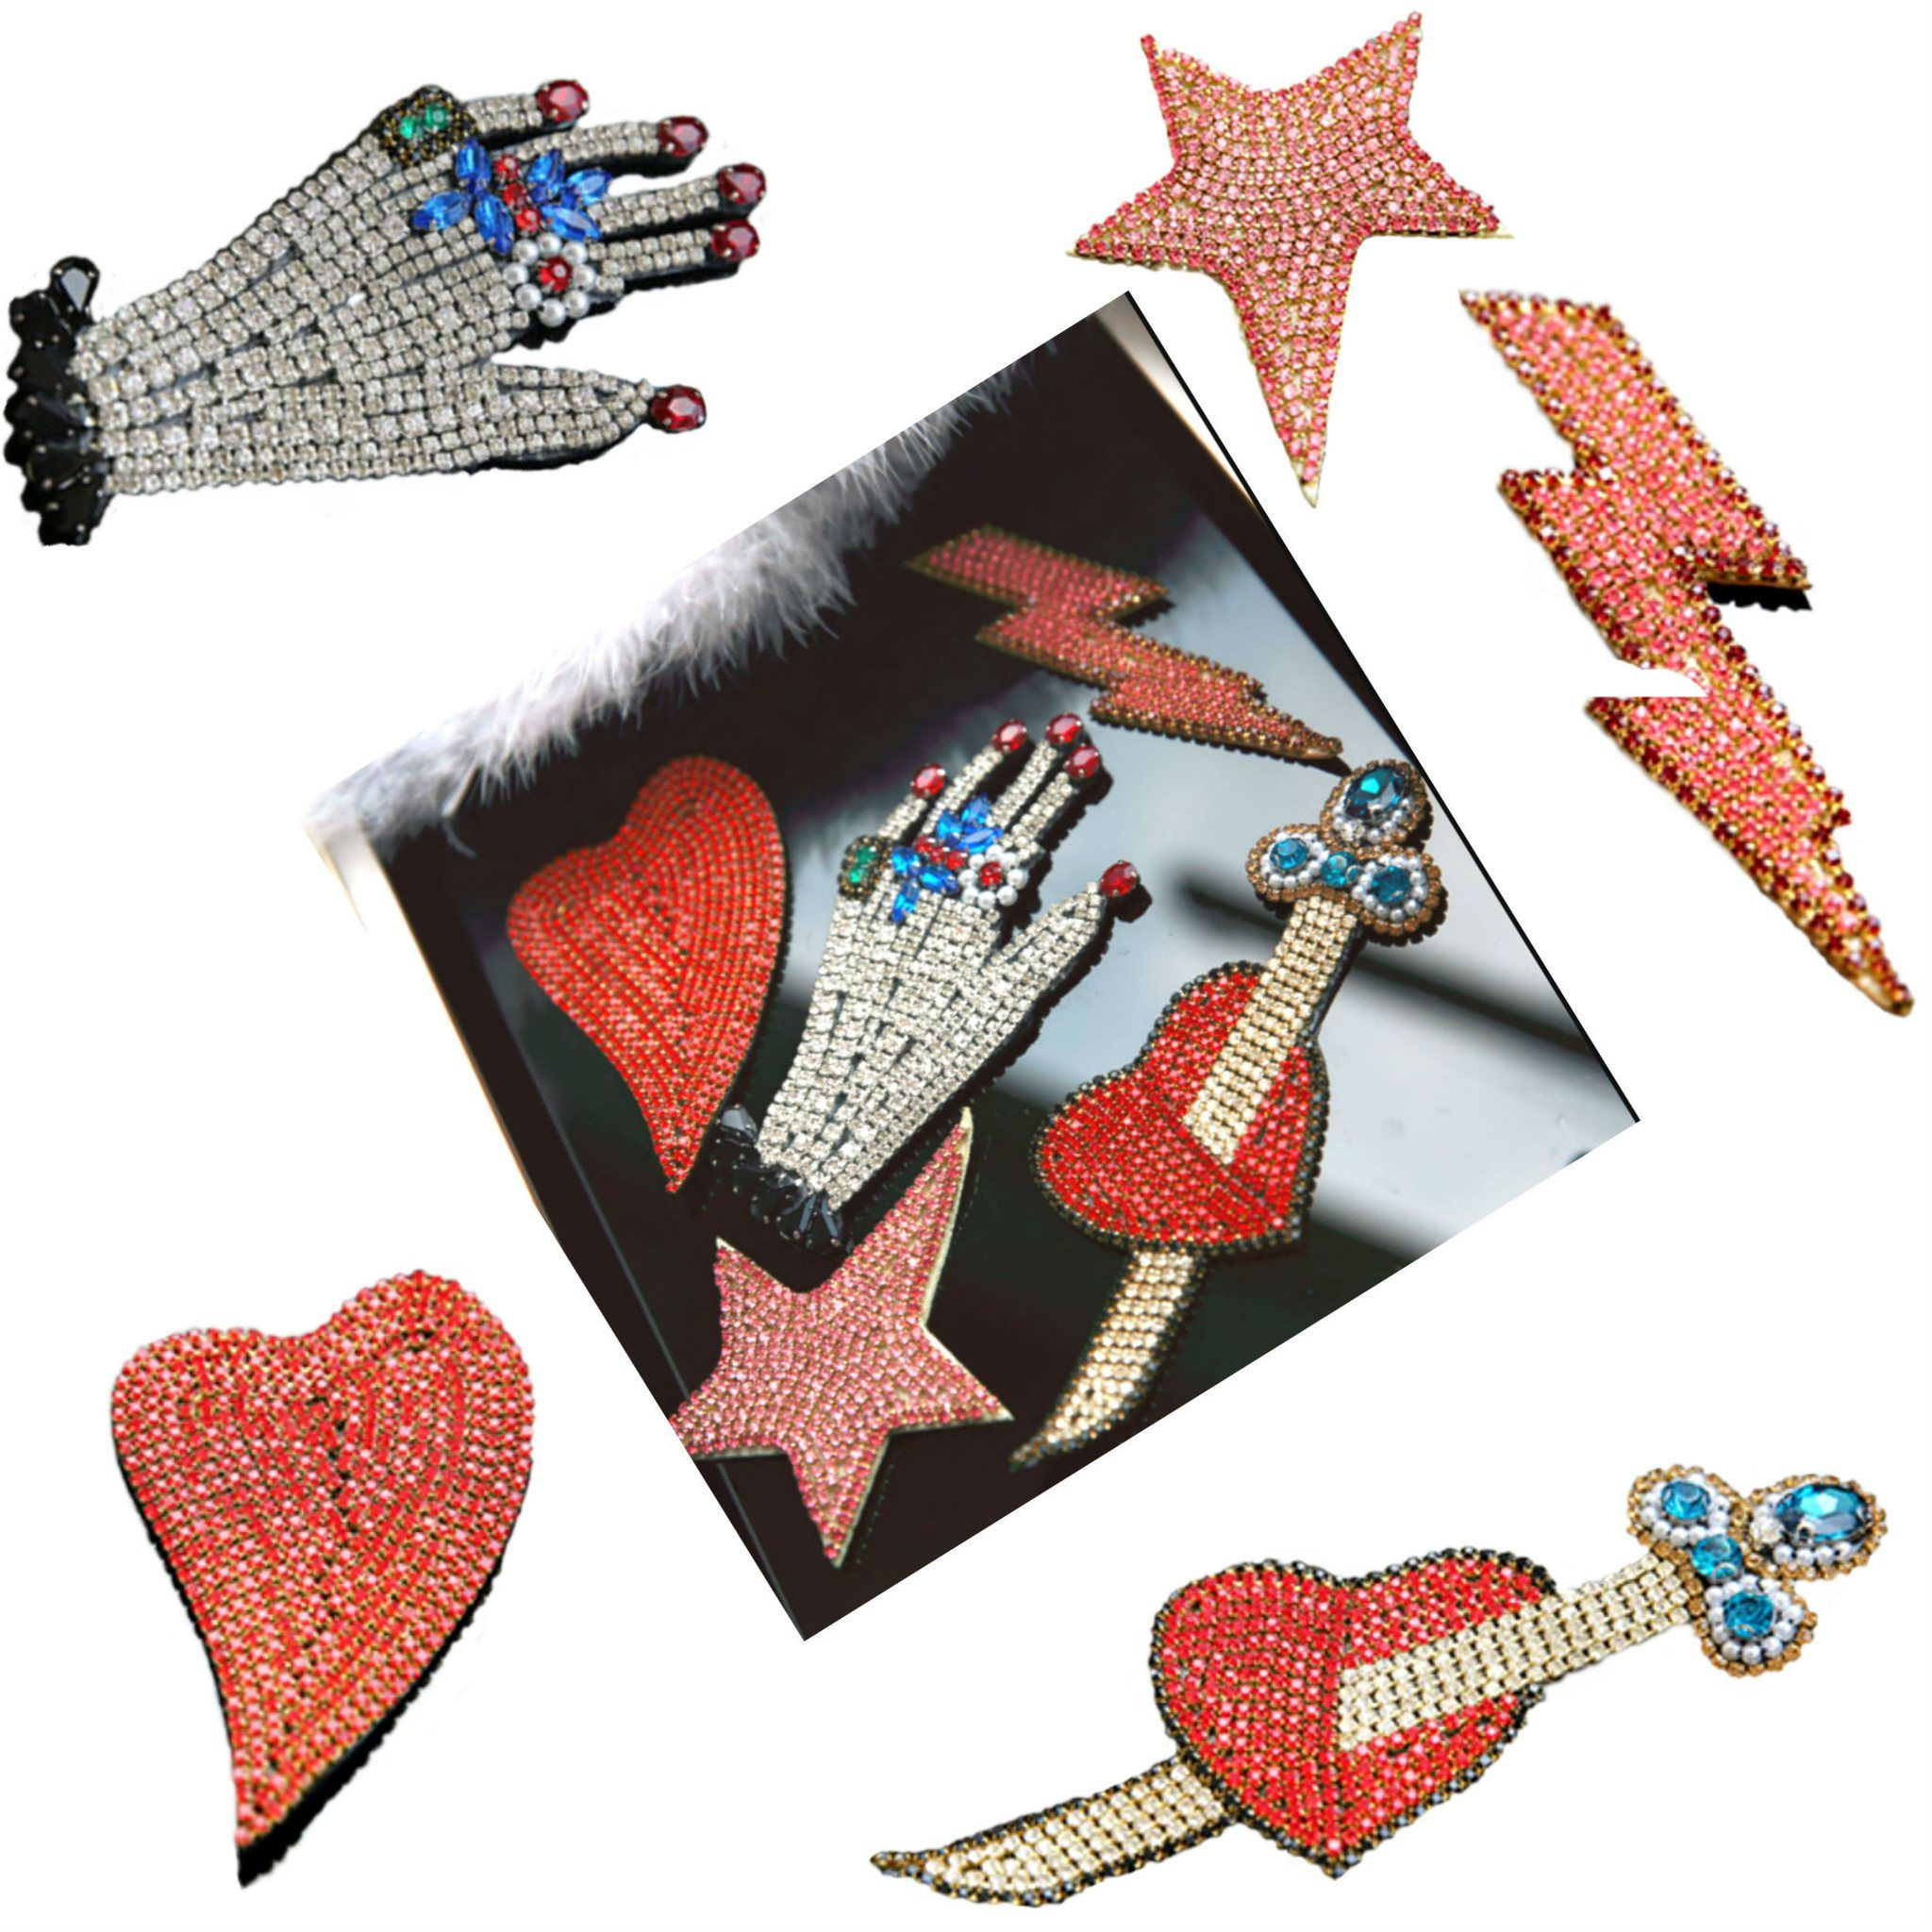 Glitter Star Patch Sew Iron On Applique DIY Badge Shoes Clothes Bags Patches